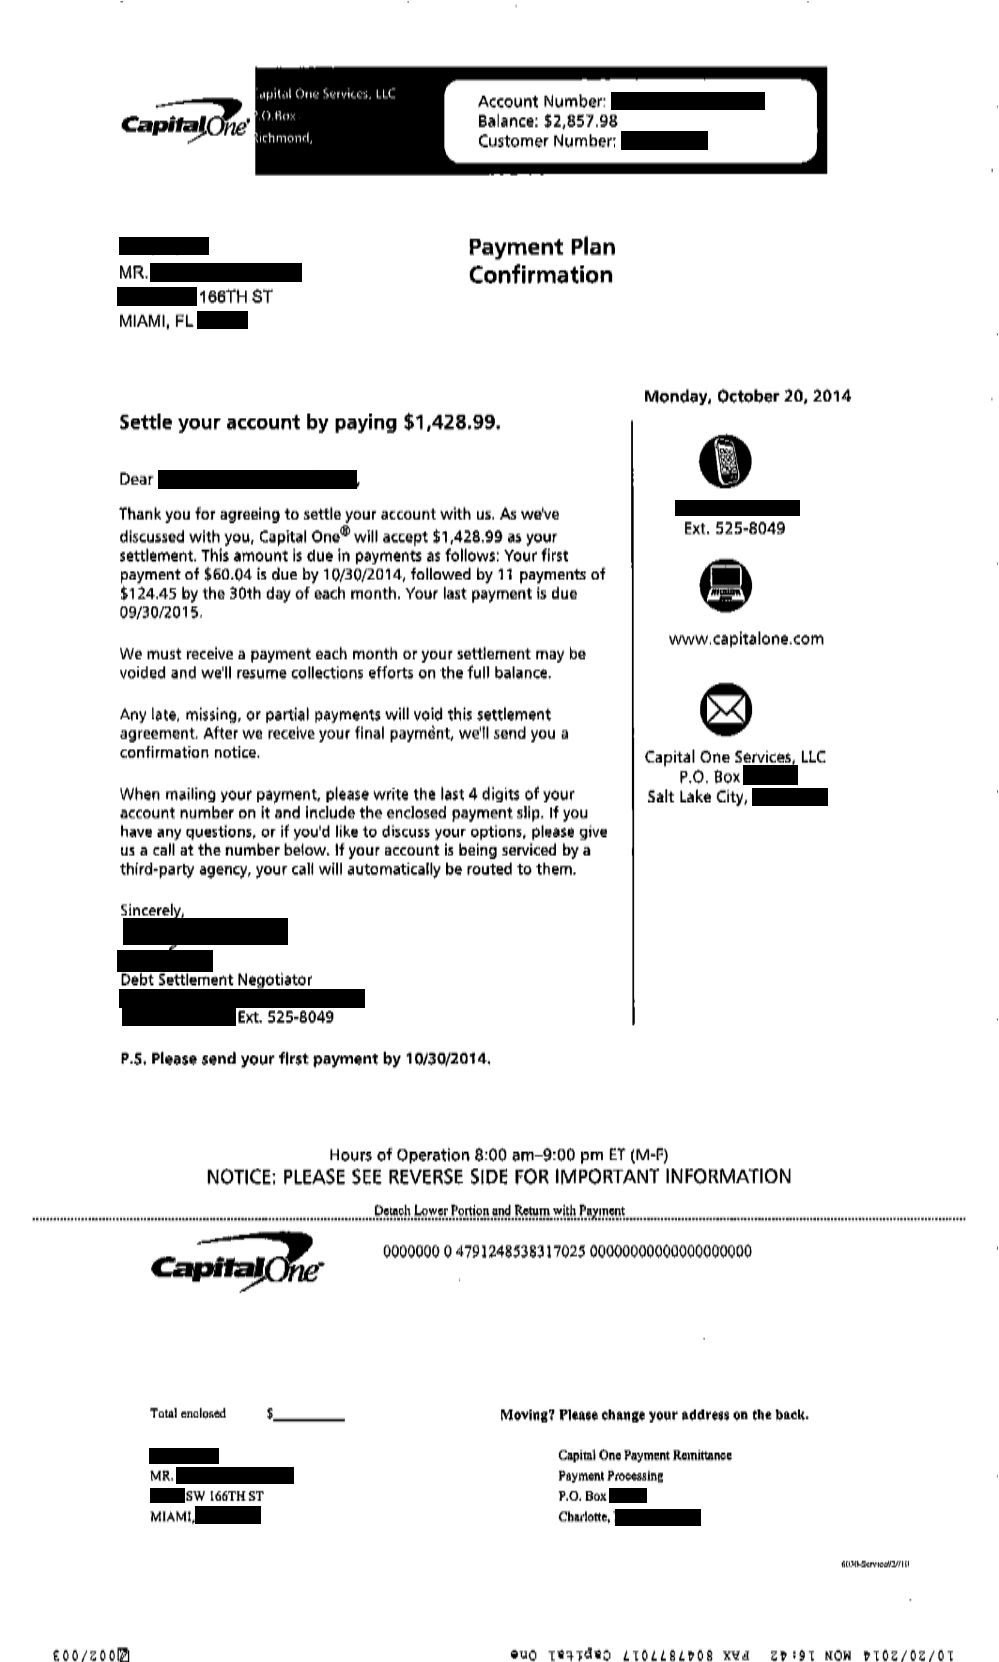 Saved $1071.01 with Capital One for Client DA